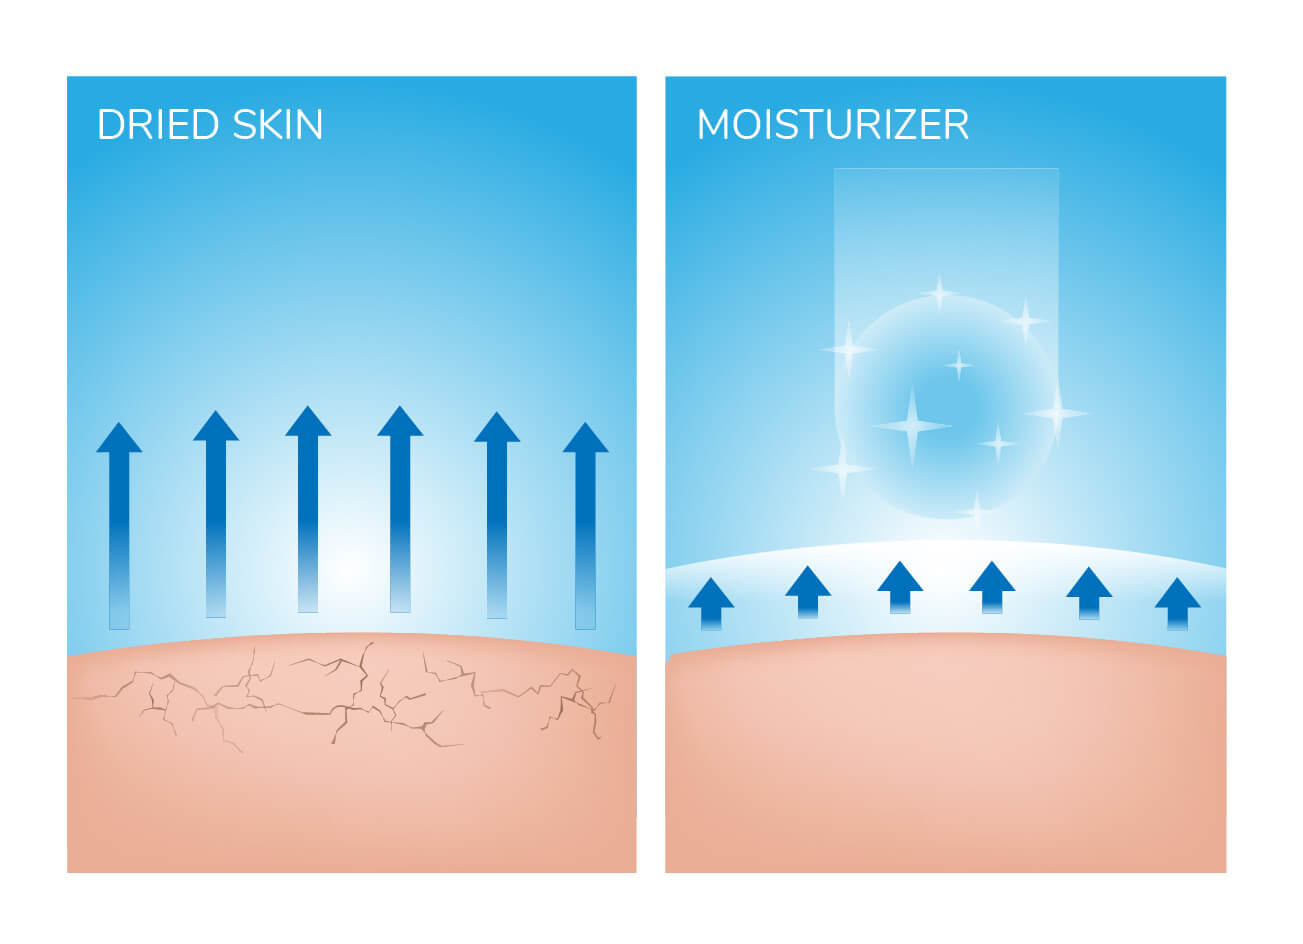 Illustration of dry versus moisturized skin